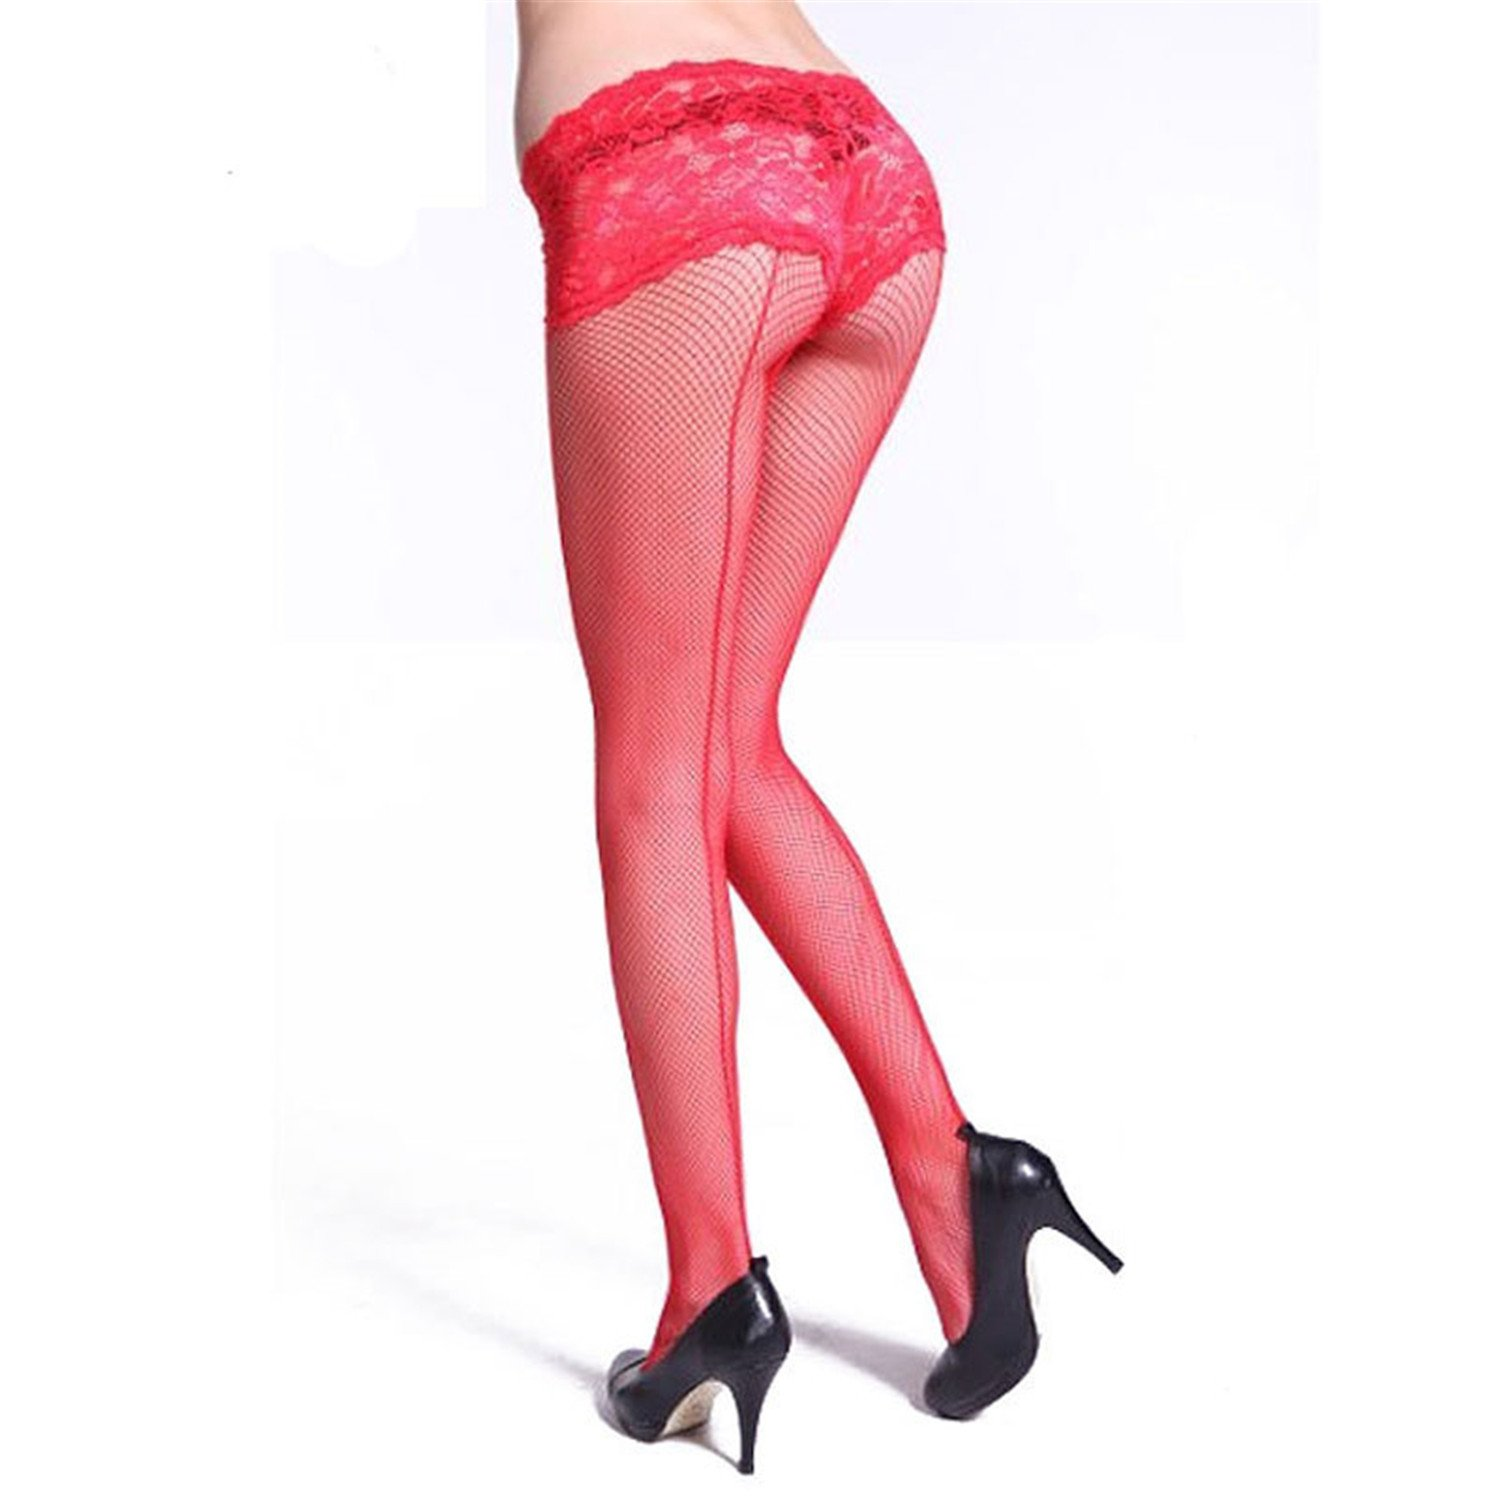 Solme Women New Style Black Line Back Fishnet Pantyhose Nylon Tights Stockings Pantyhose High Over Knee Red